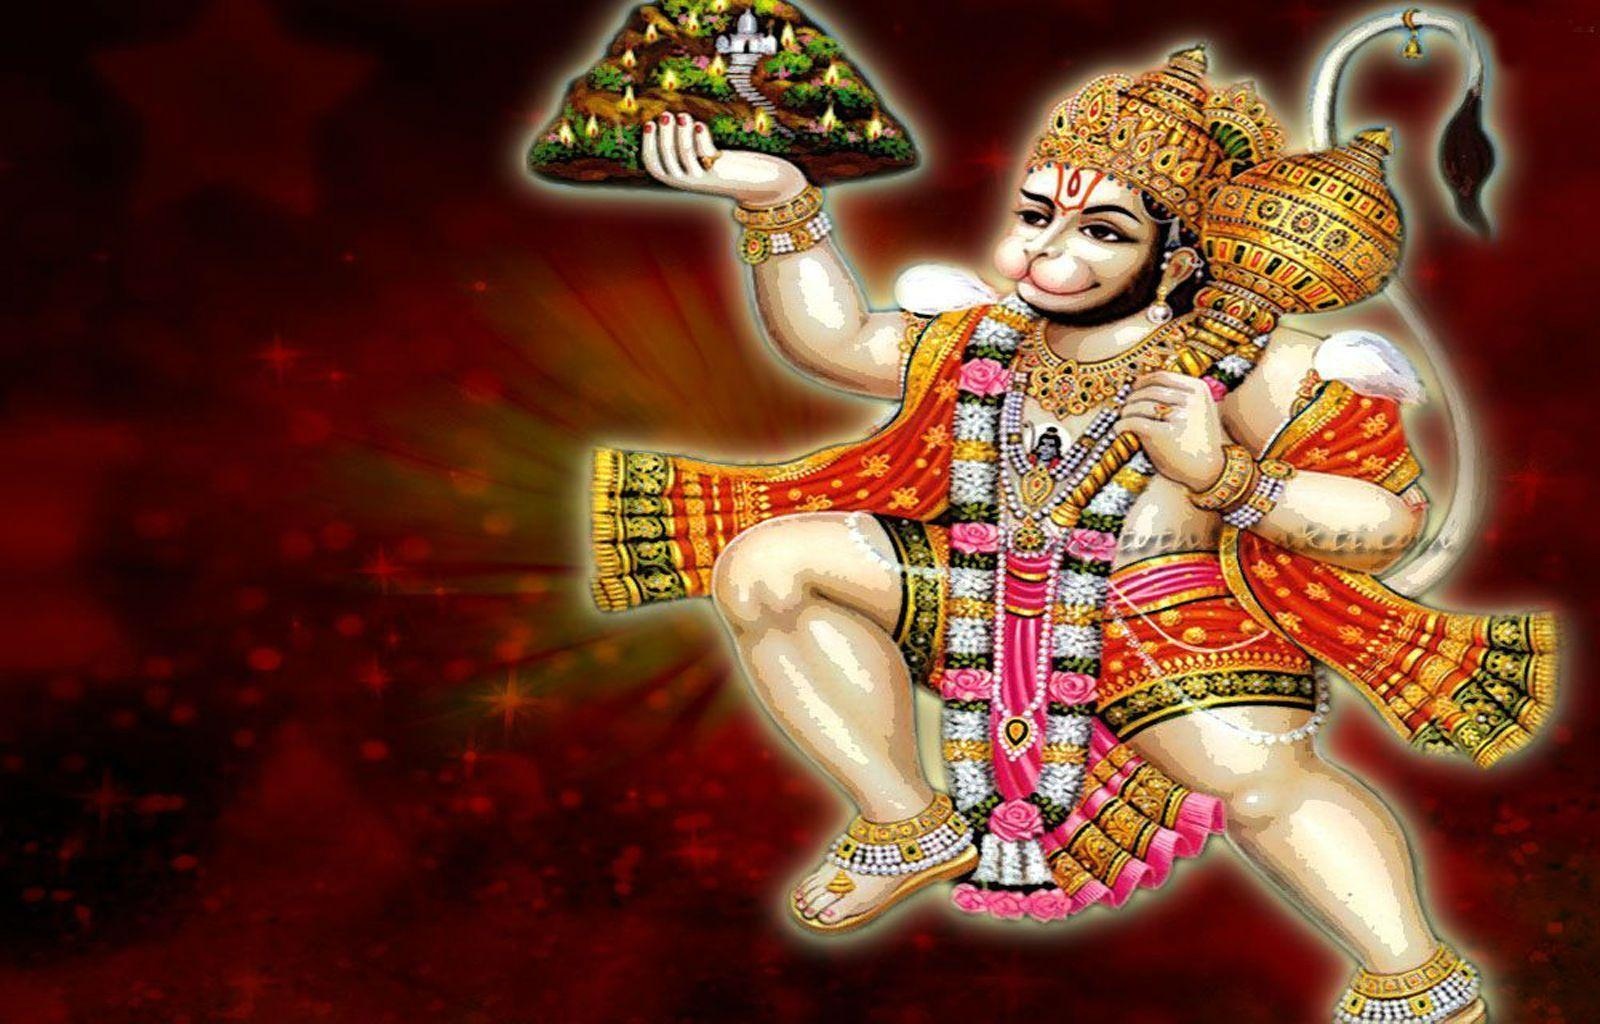 Hanuman wallpaper, photos, pictures & Image for desktop backgrounds